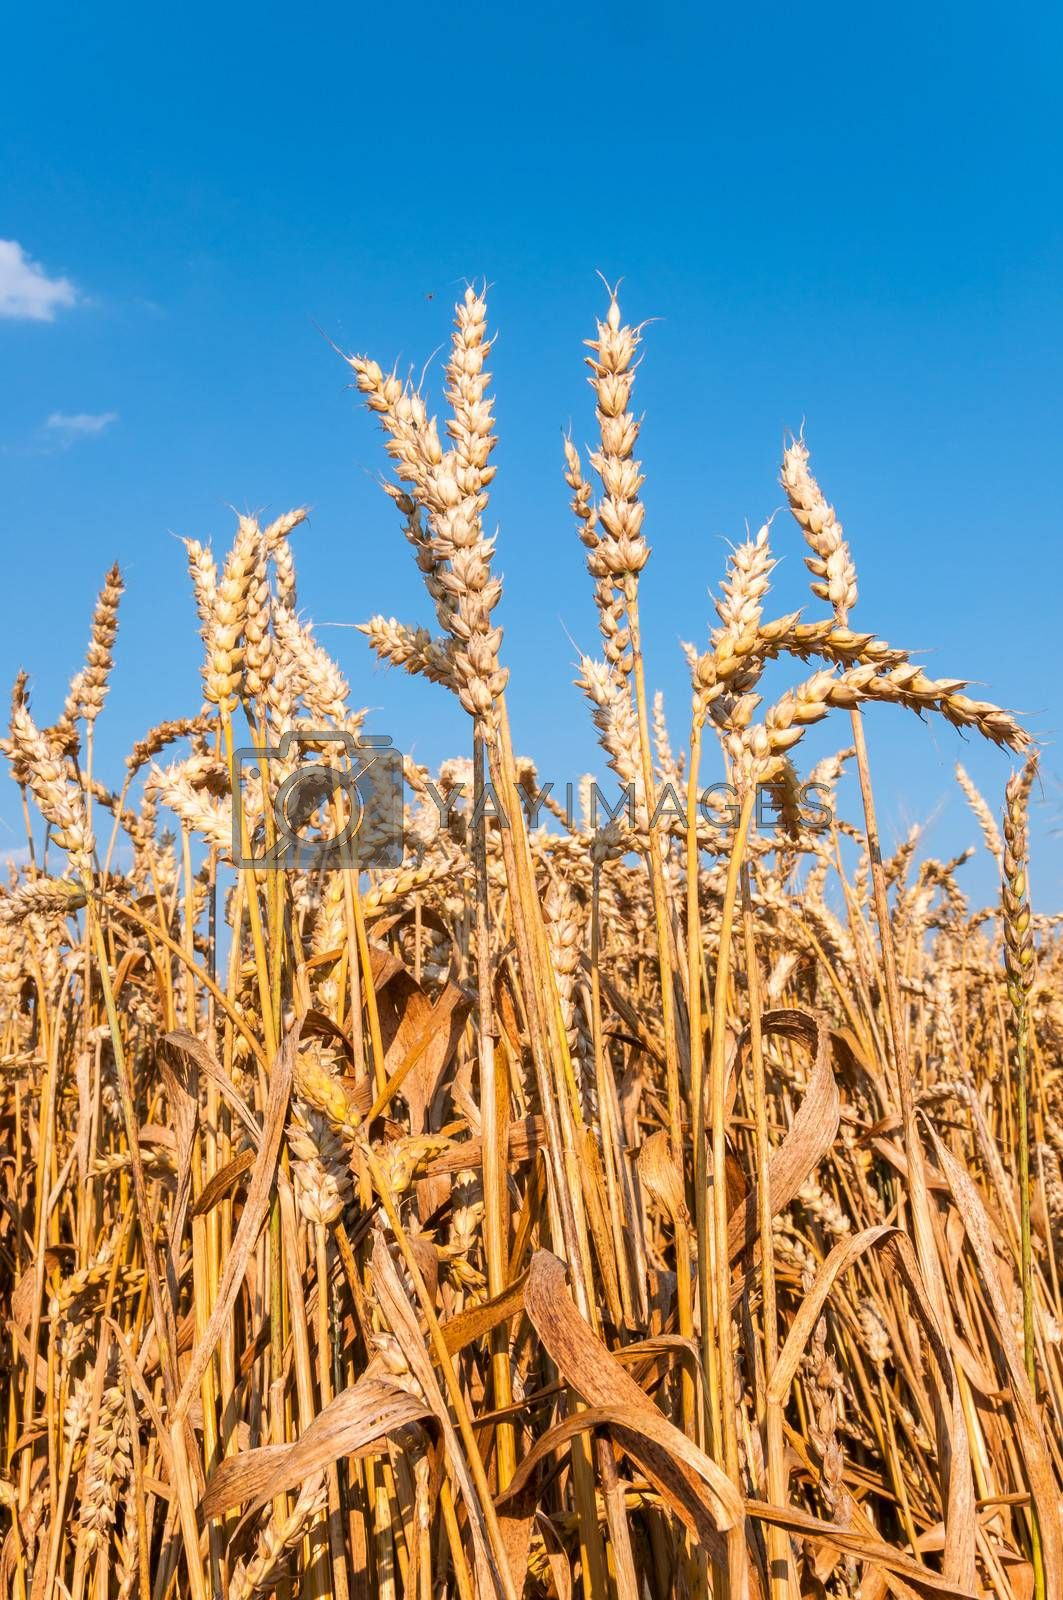 Wheat field with blue sky in background (vertical)